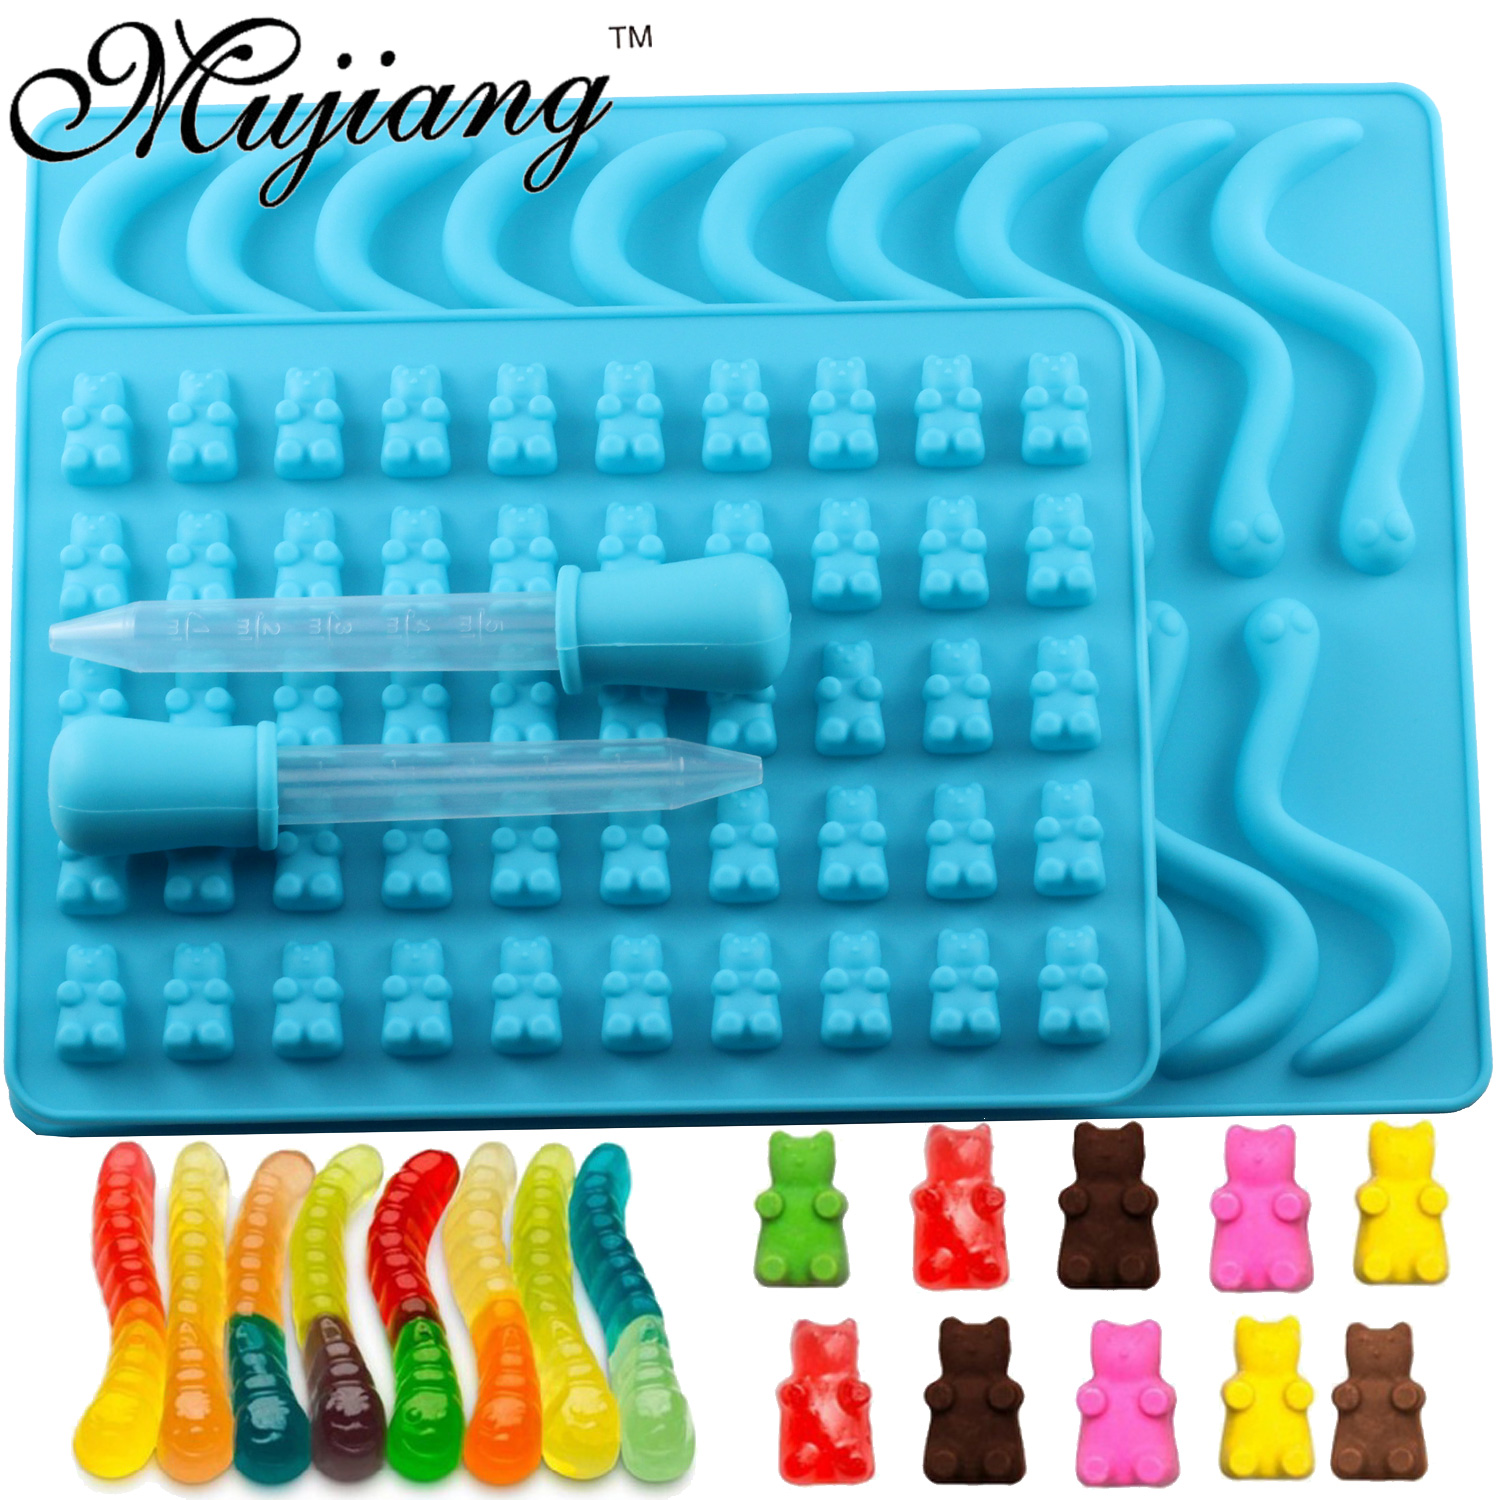 Mujiang 50 Cavity Bear Silicone Gummy Chocolate Sugar Candy Jelly Moulds Snake Worms Ice Tube Måttkaka Cake Decorating Tools